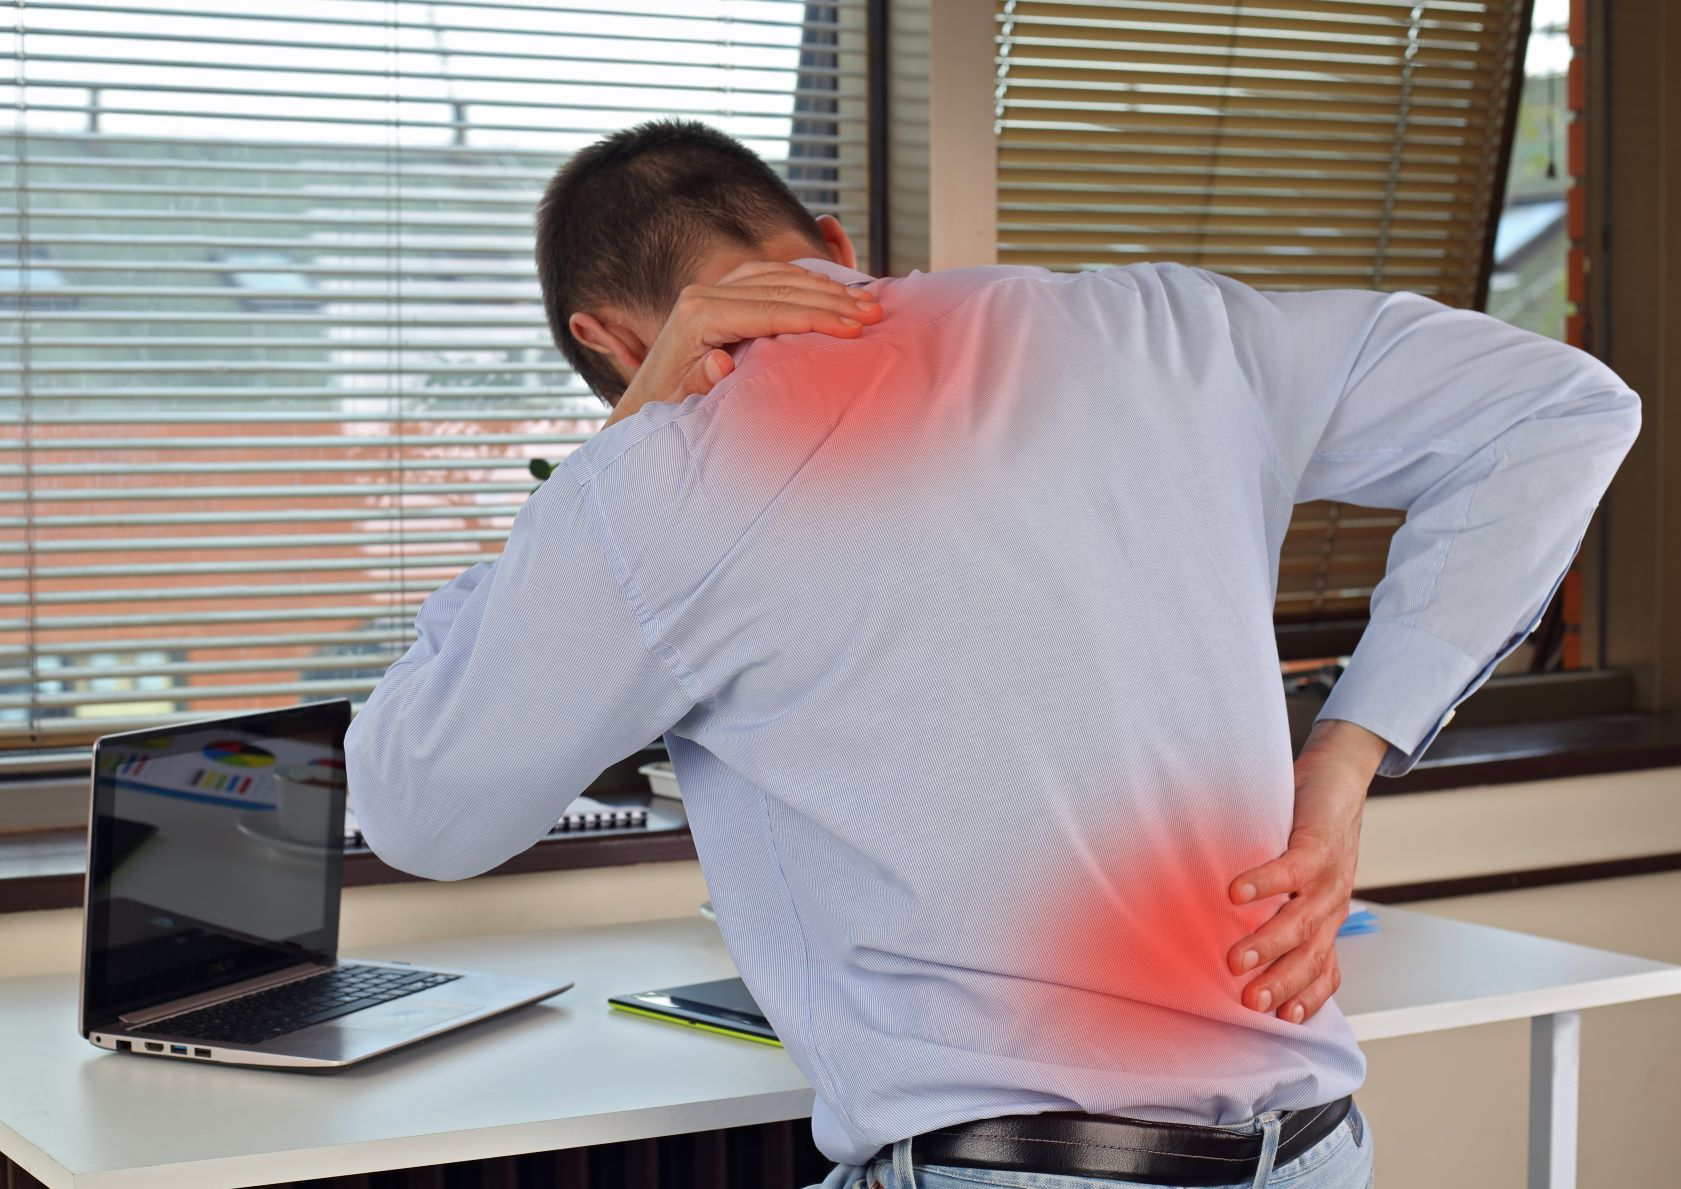 Office Exercises to Help Reduce Back and Neck Pain